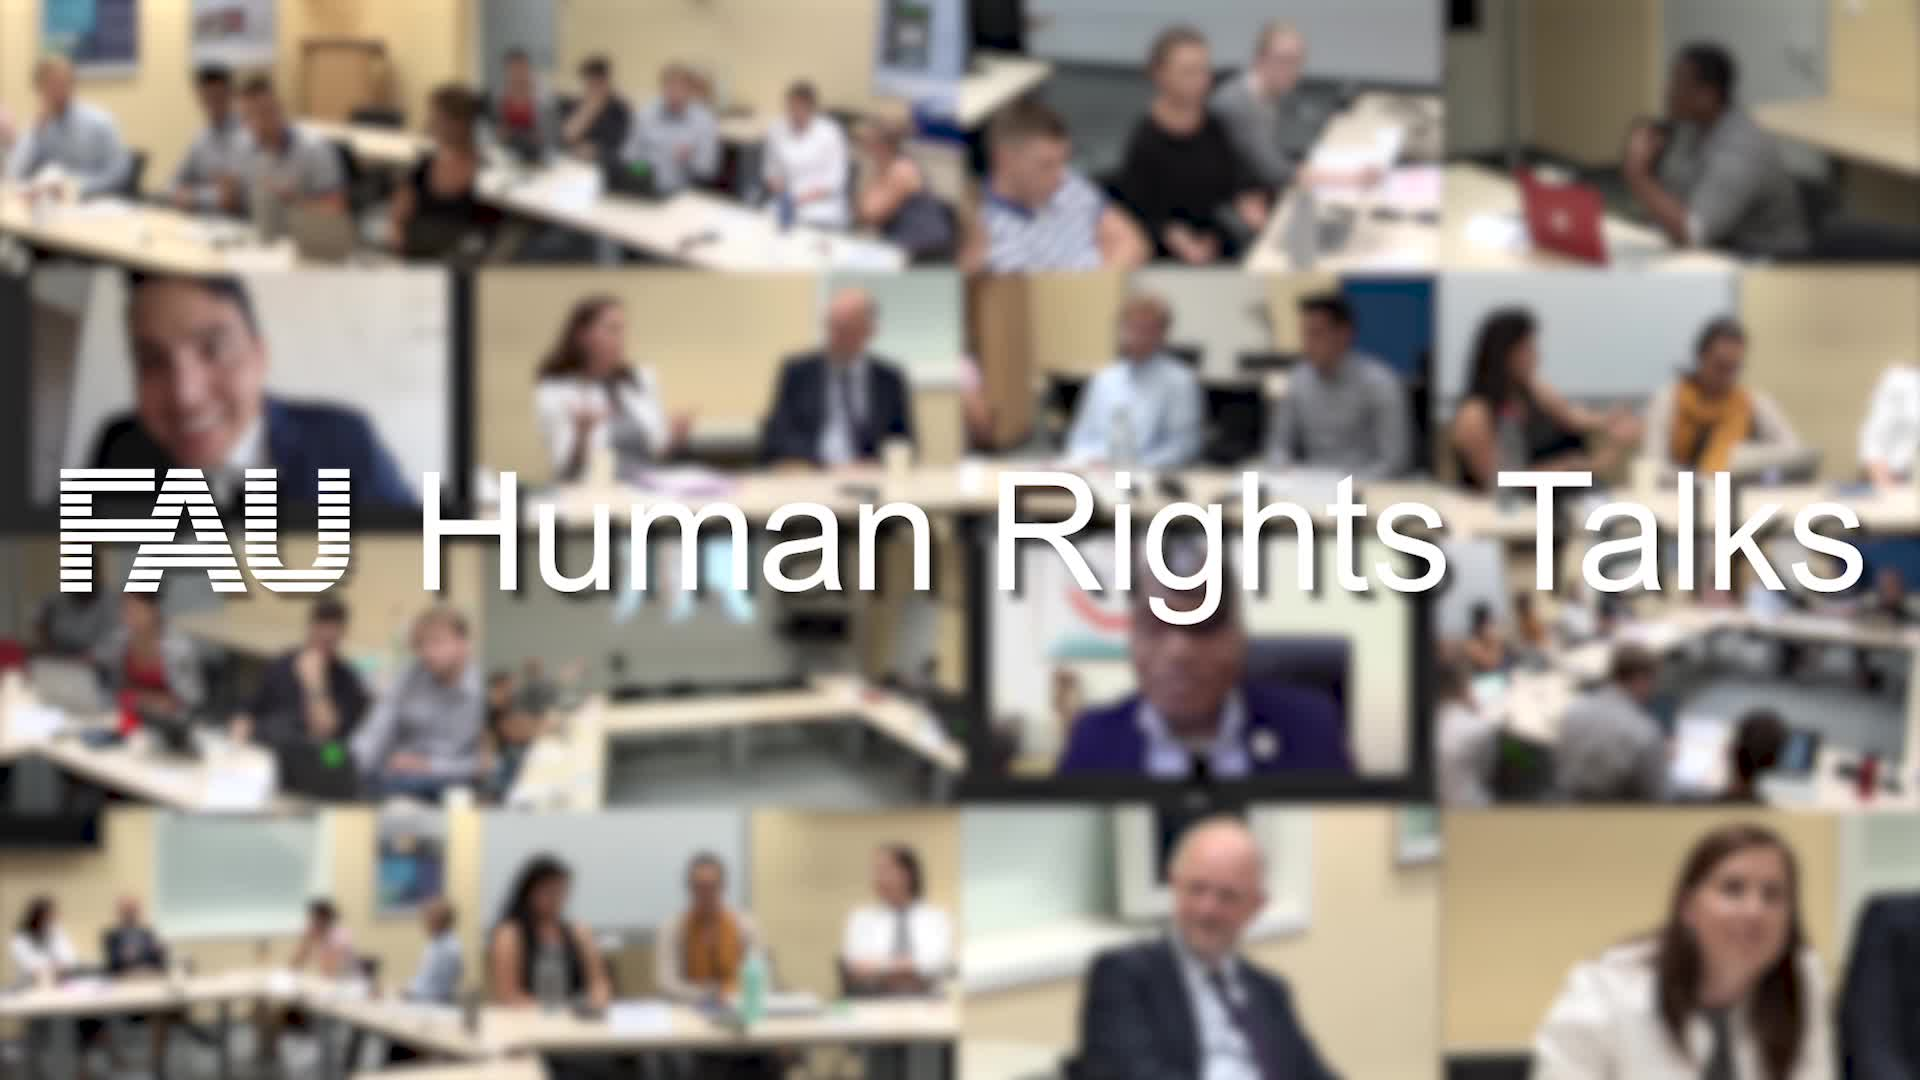 FAU Human Rights Talks - Allgemeine Infos preview image